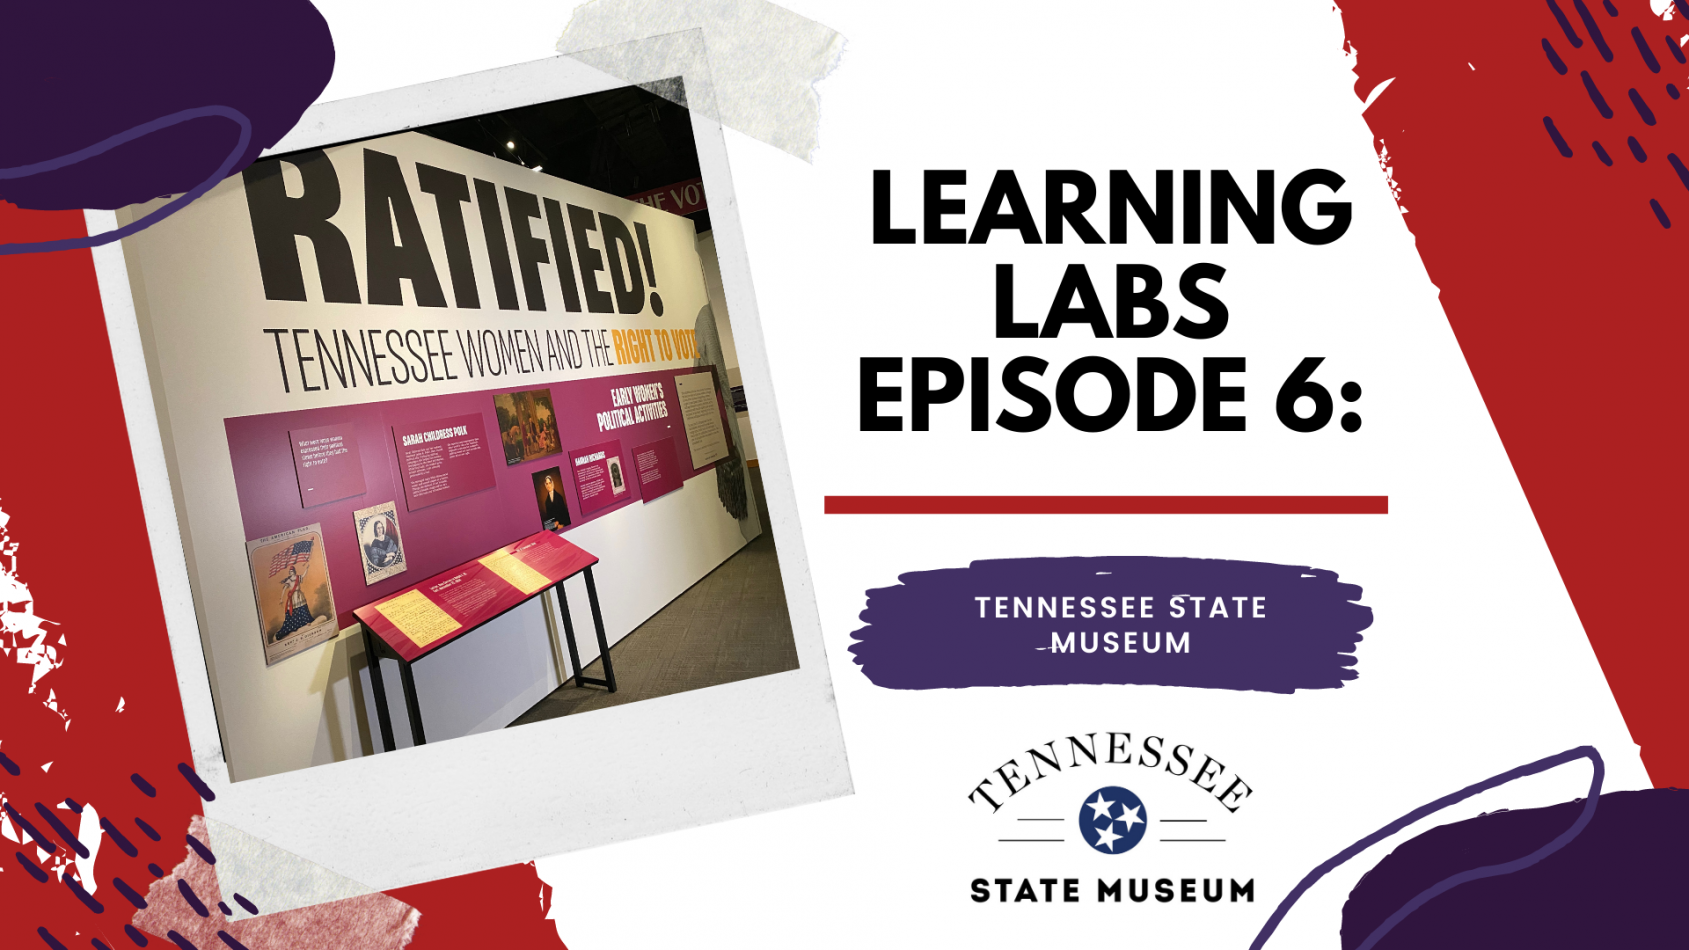 Tennessee State Museum Learning Lab